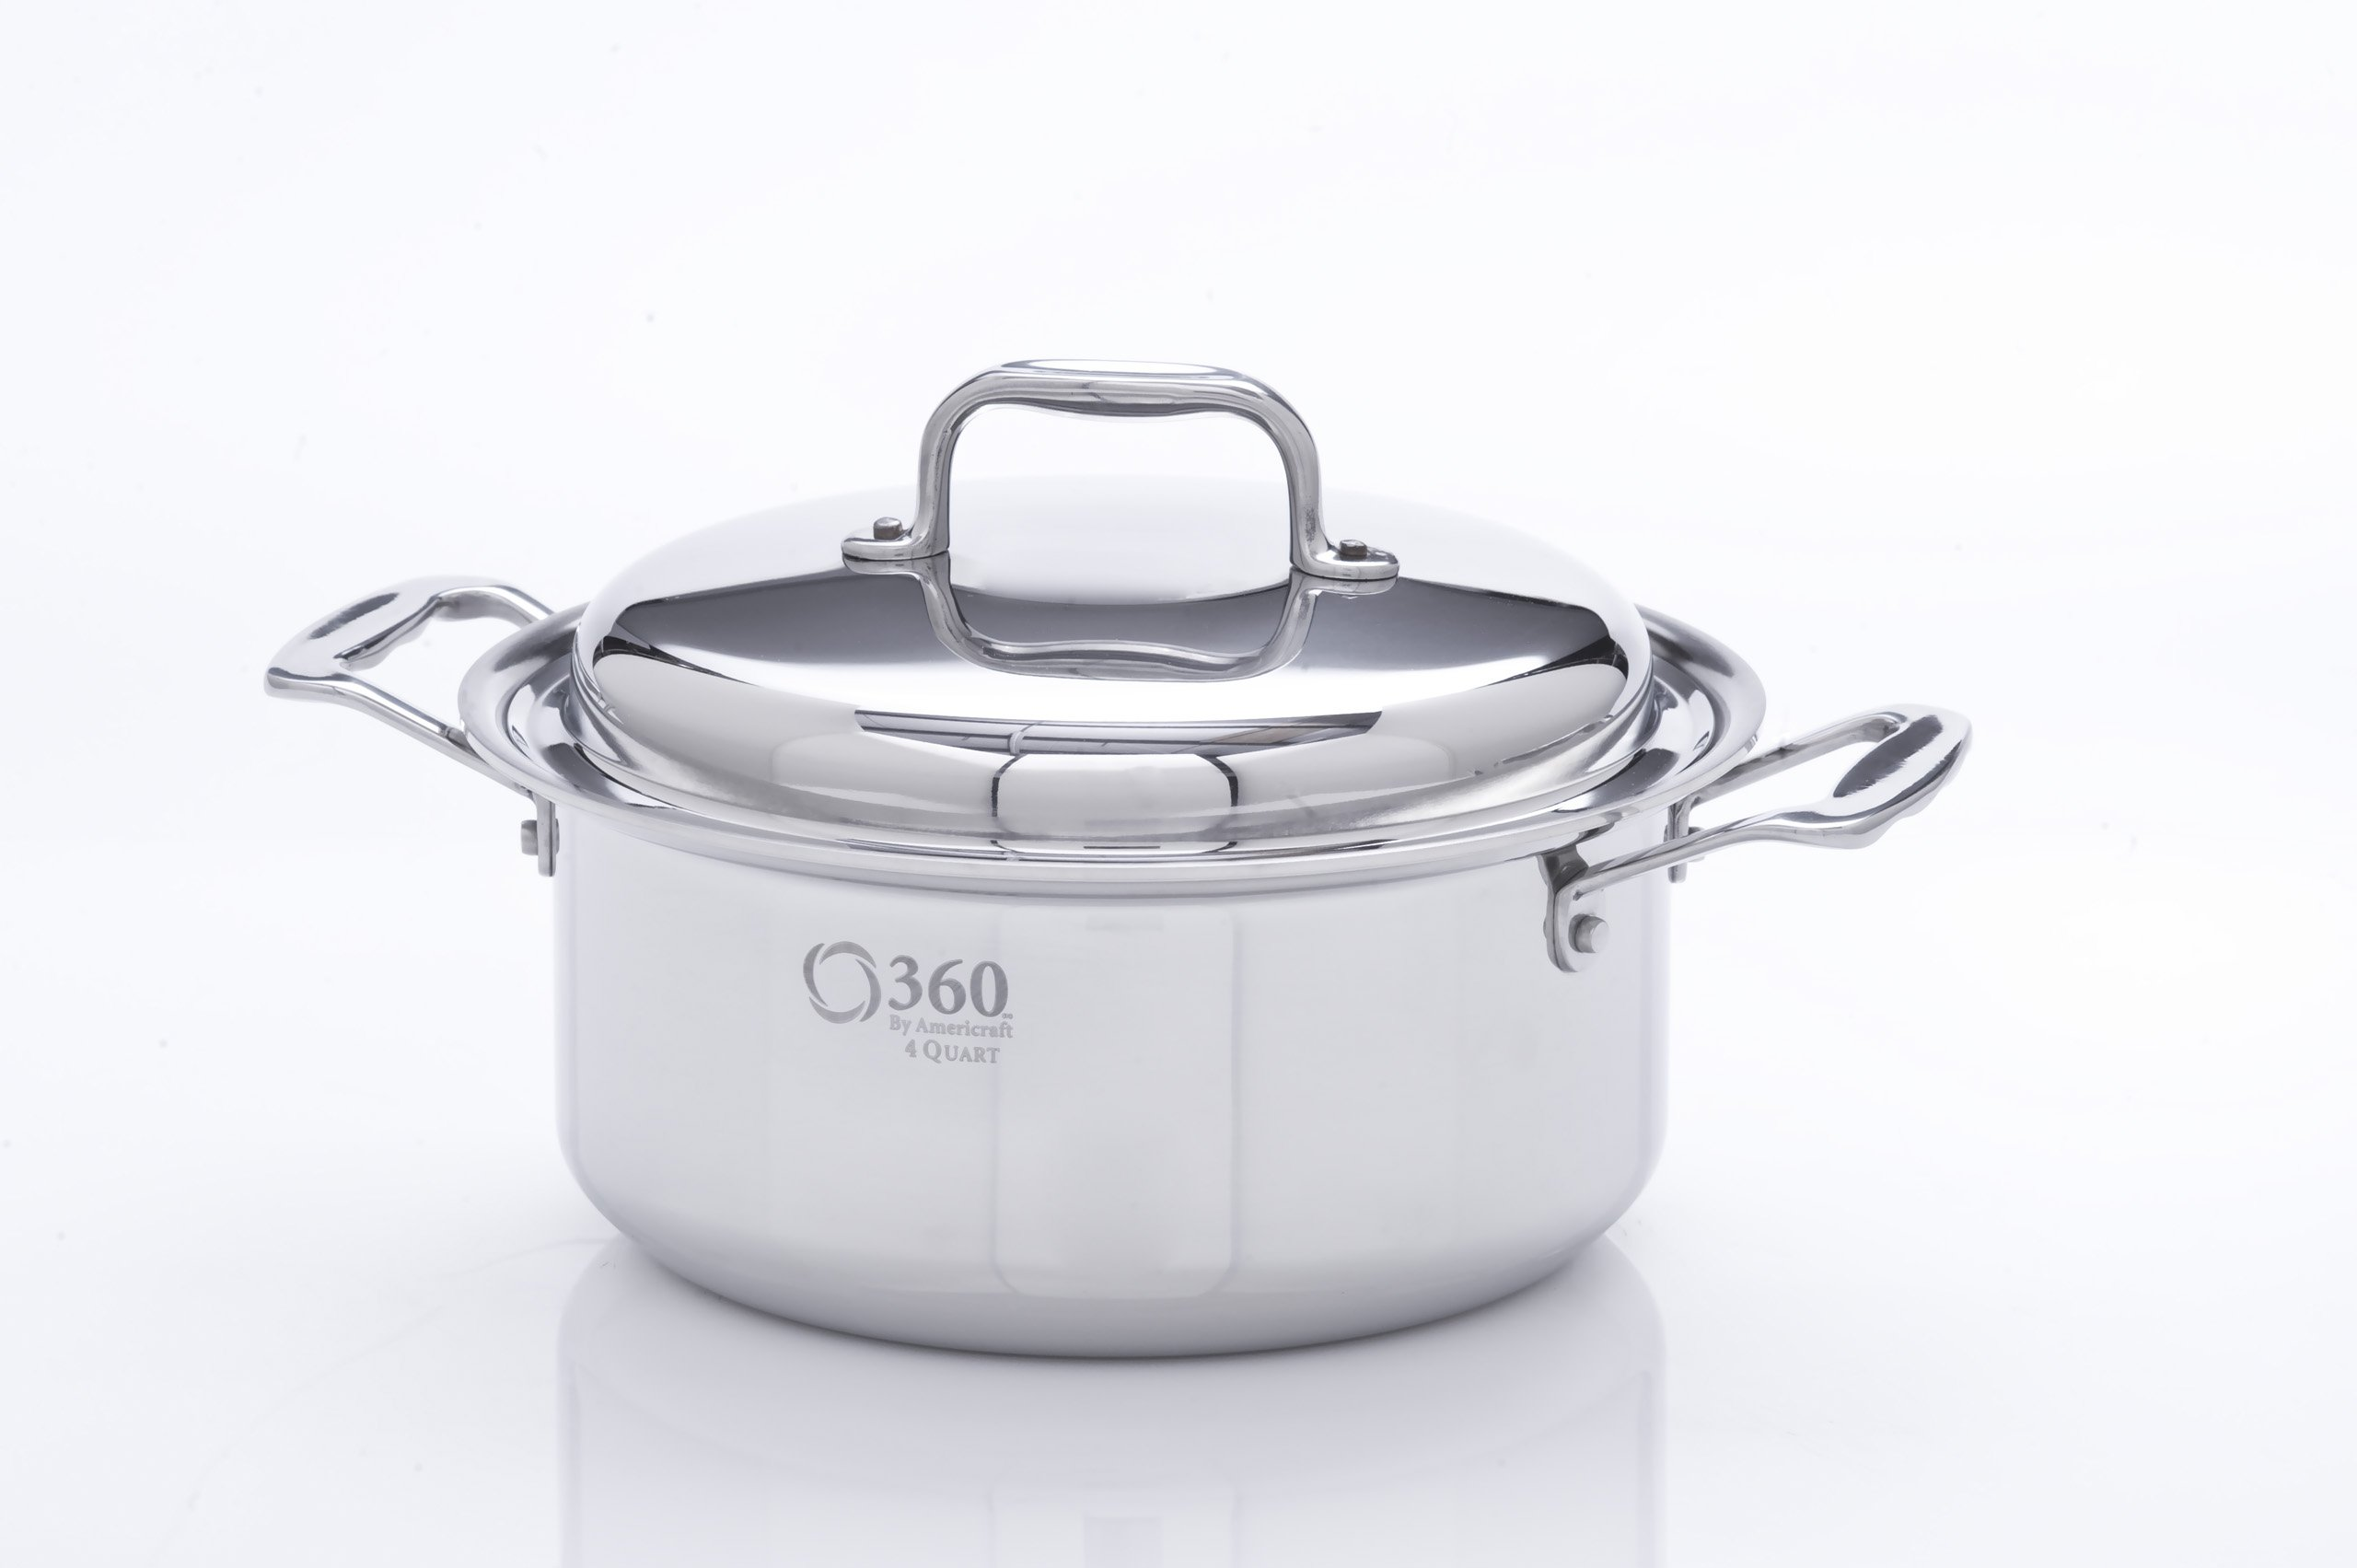 360 Cookware Stainless Steel Stockpot with Cover, 4-Quart by 360 Cookware